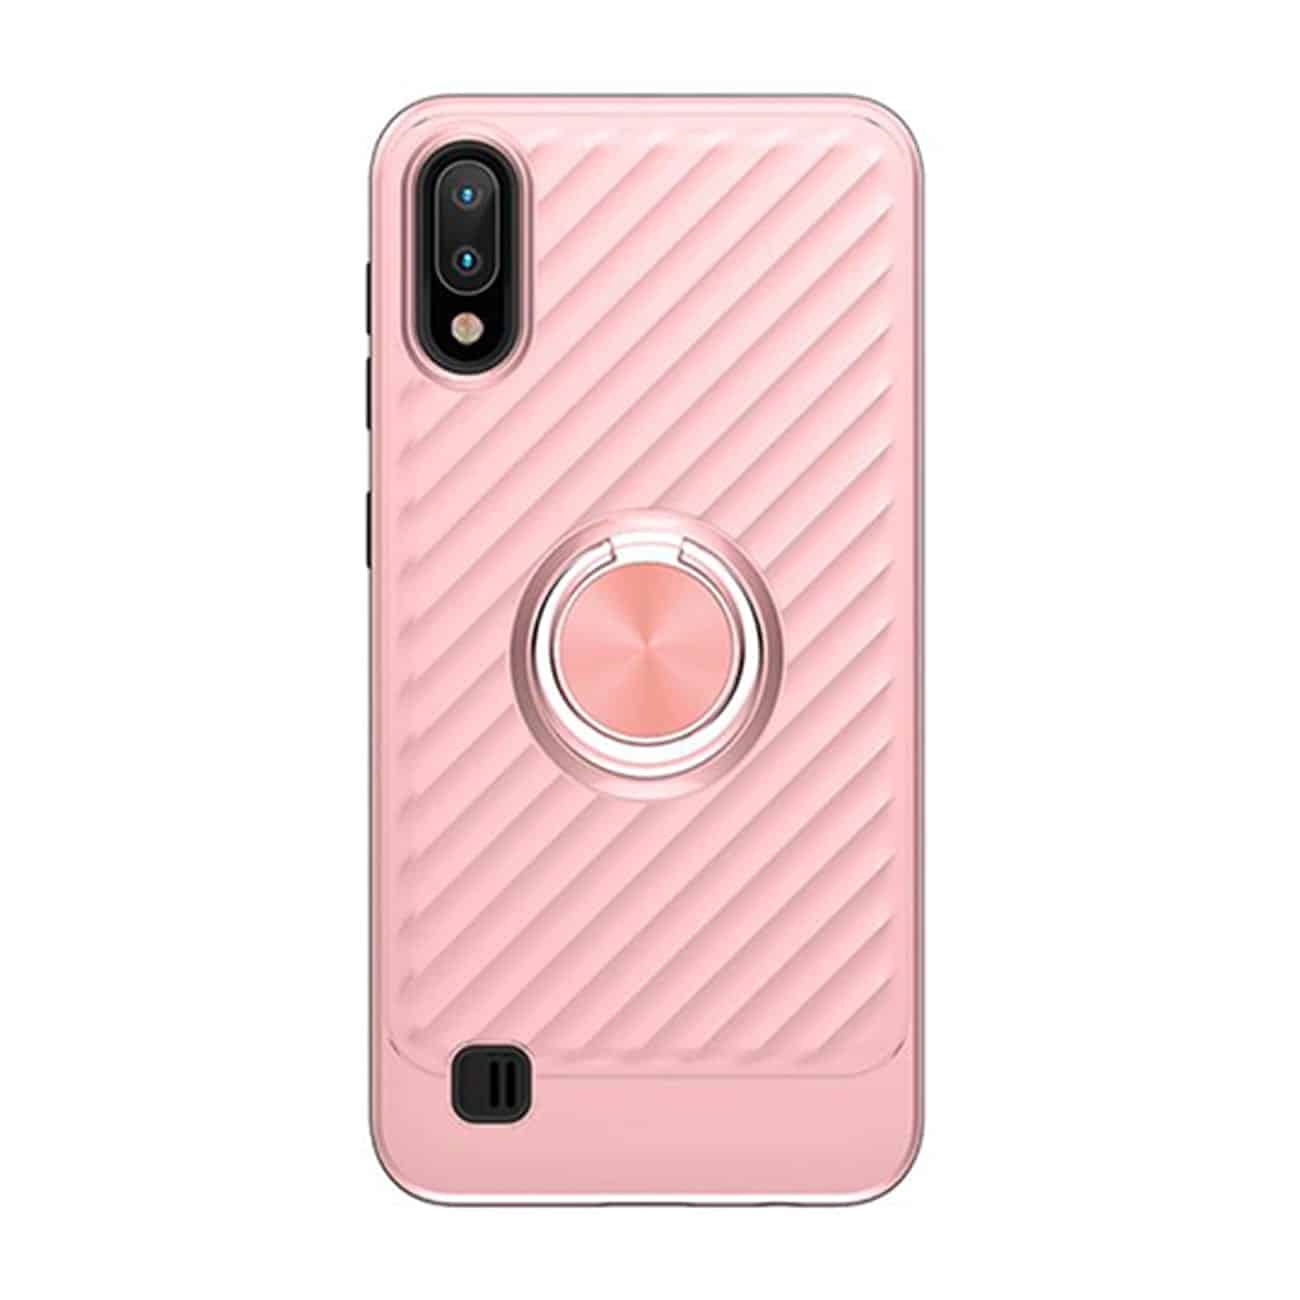 SAMSUNG GALAXY A10/M10 Case with Ring Holder In Rose Gold